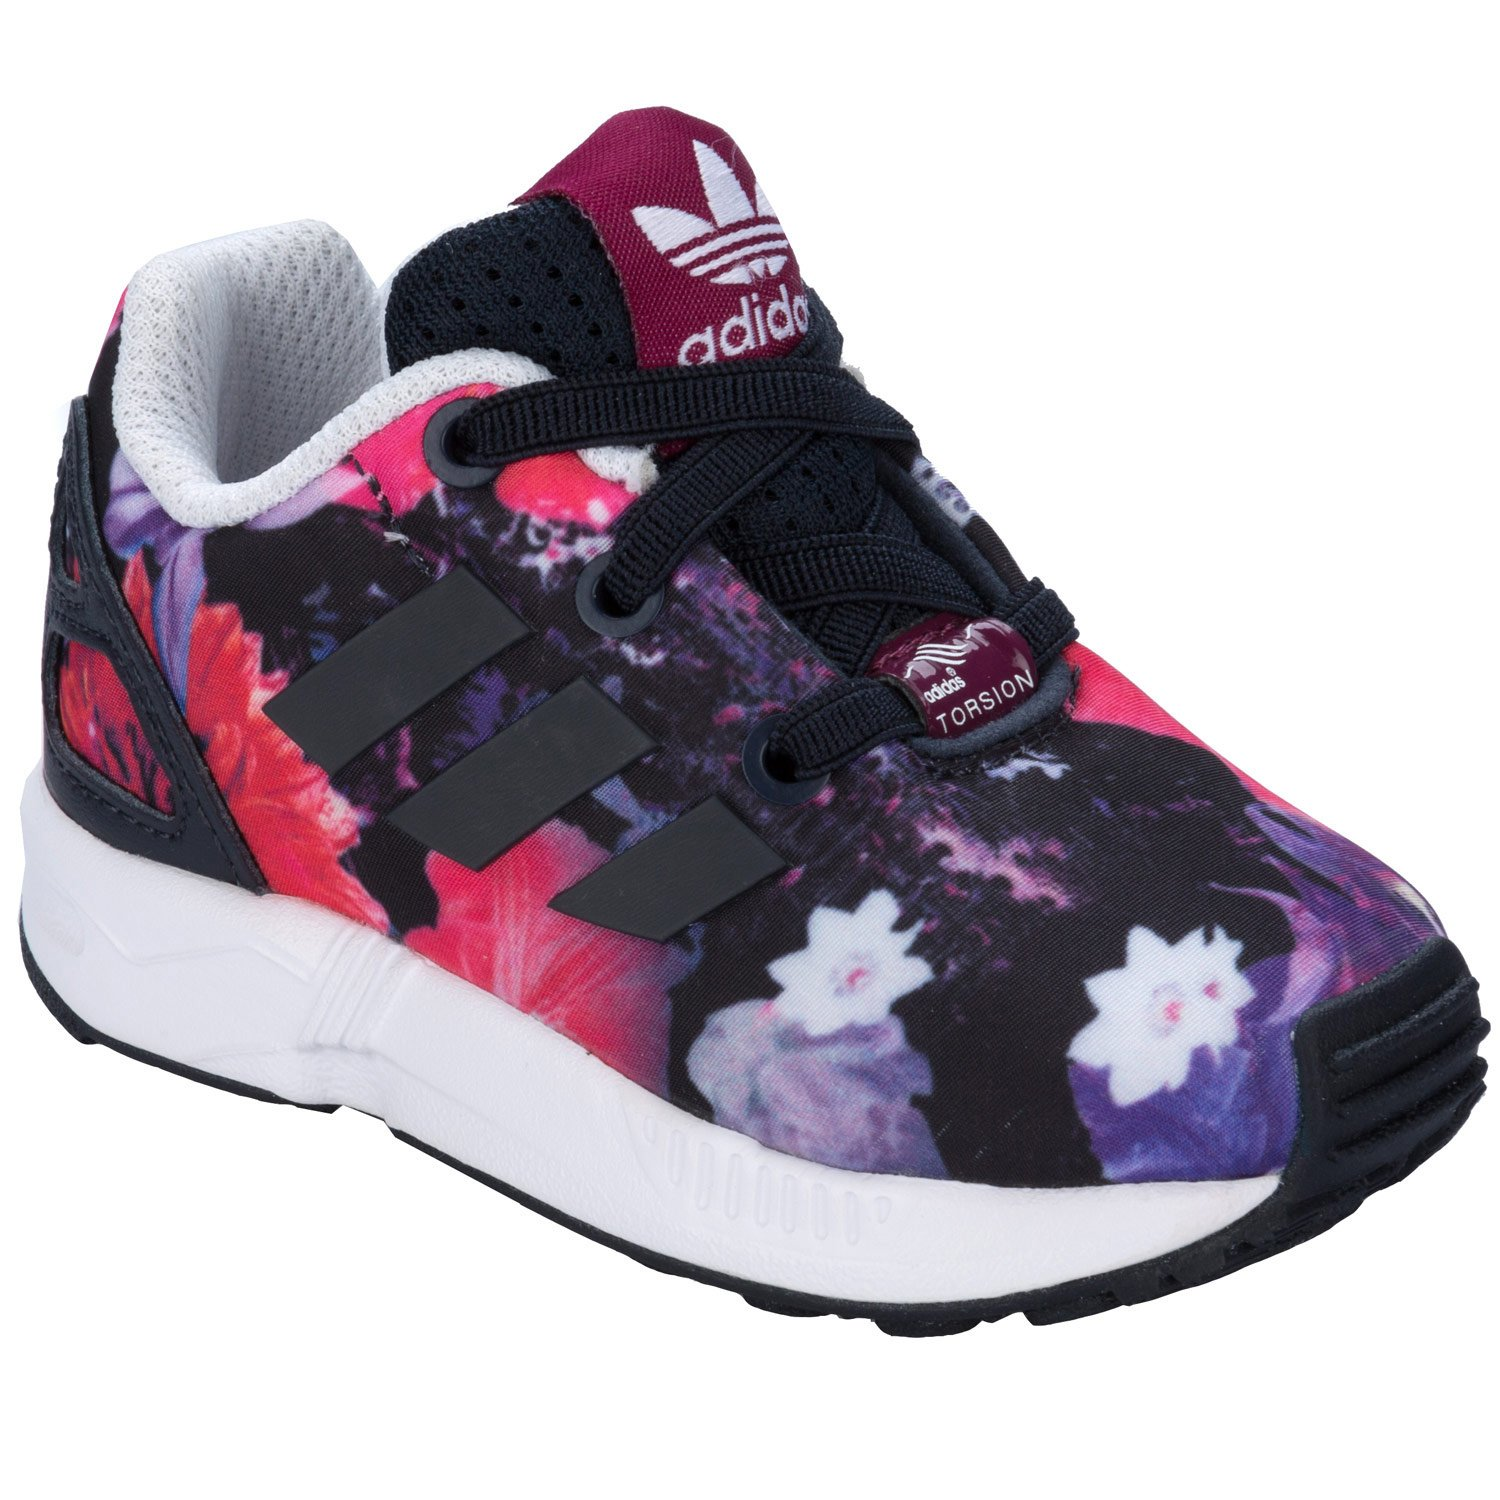 Geox Baby B New Flick Girl F Trainers  1541813237-458149  - £32.69 29111935f71